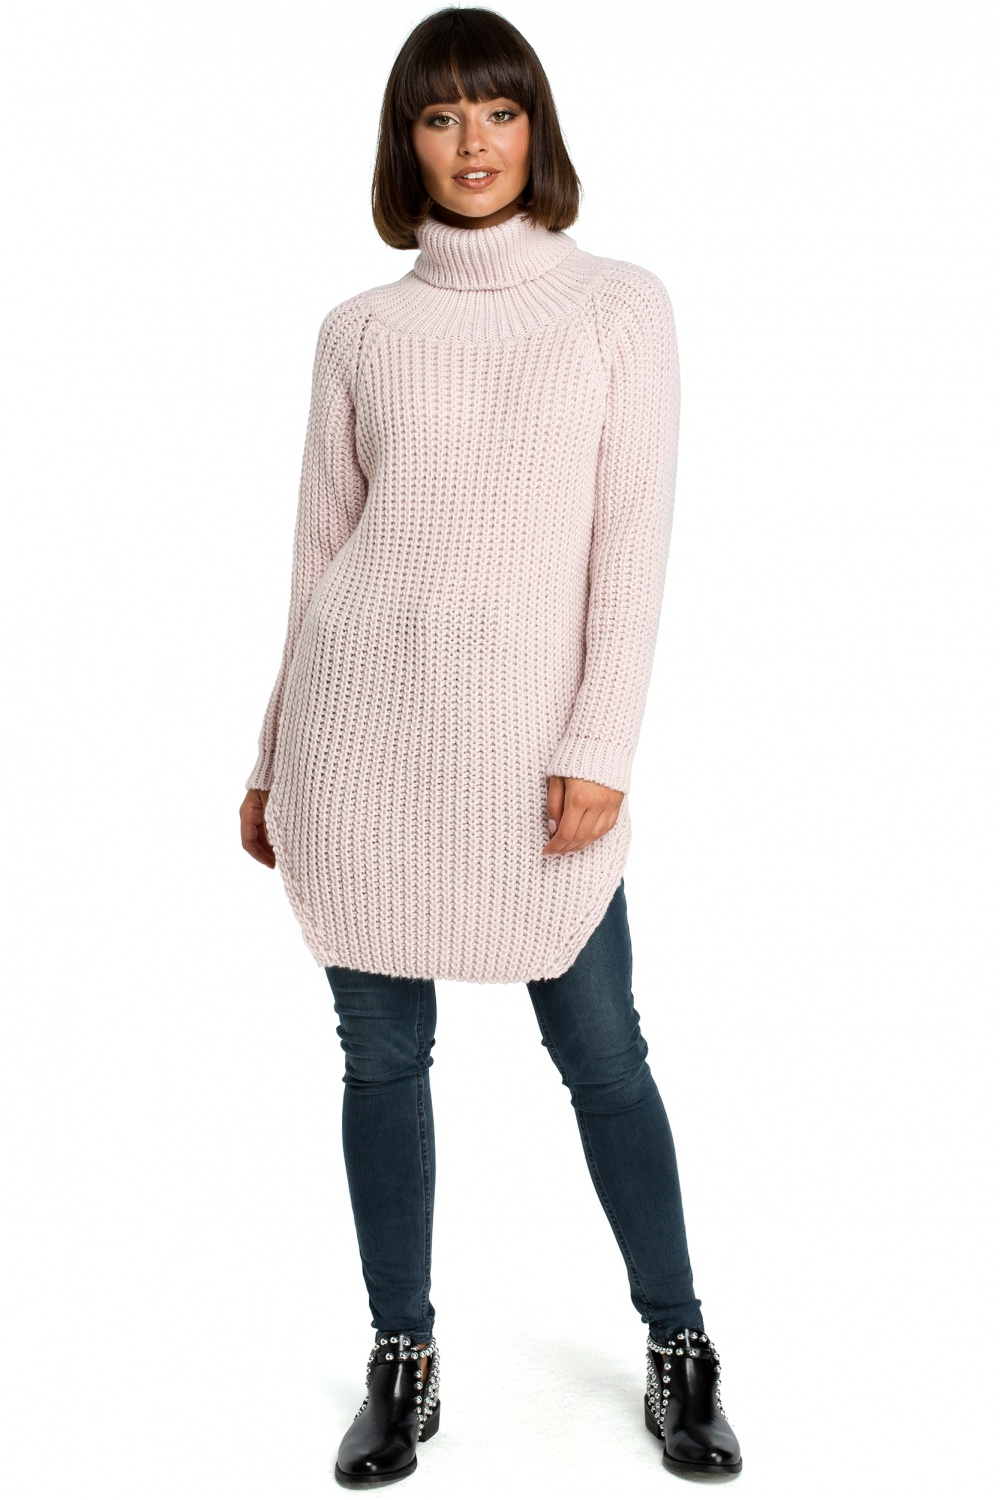 Pulover lung model 121216 BE Knit